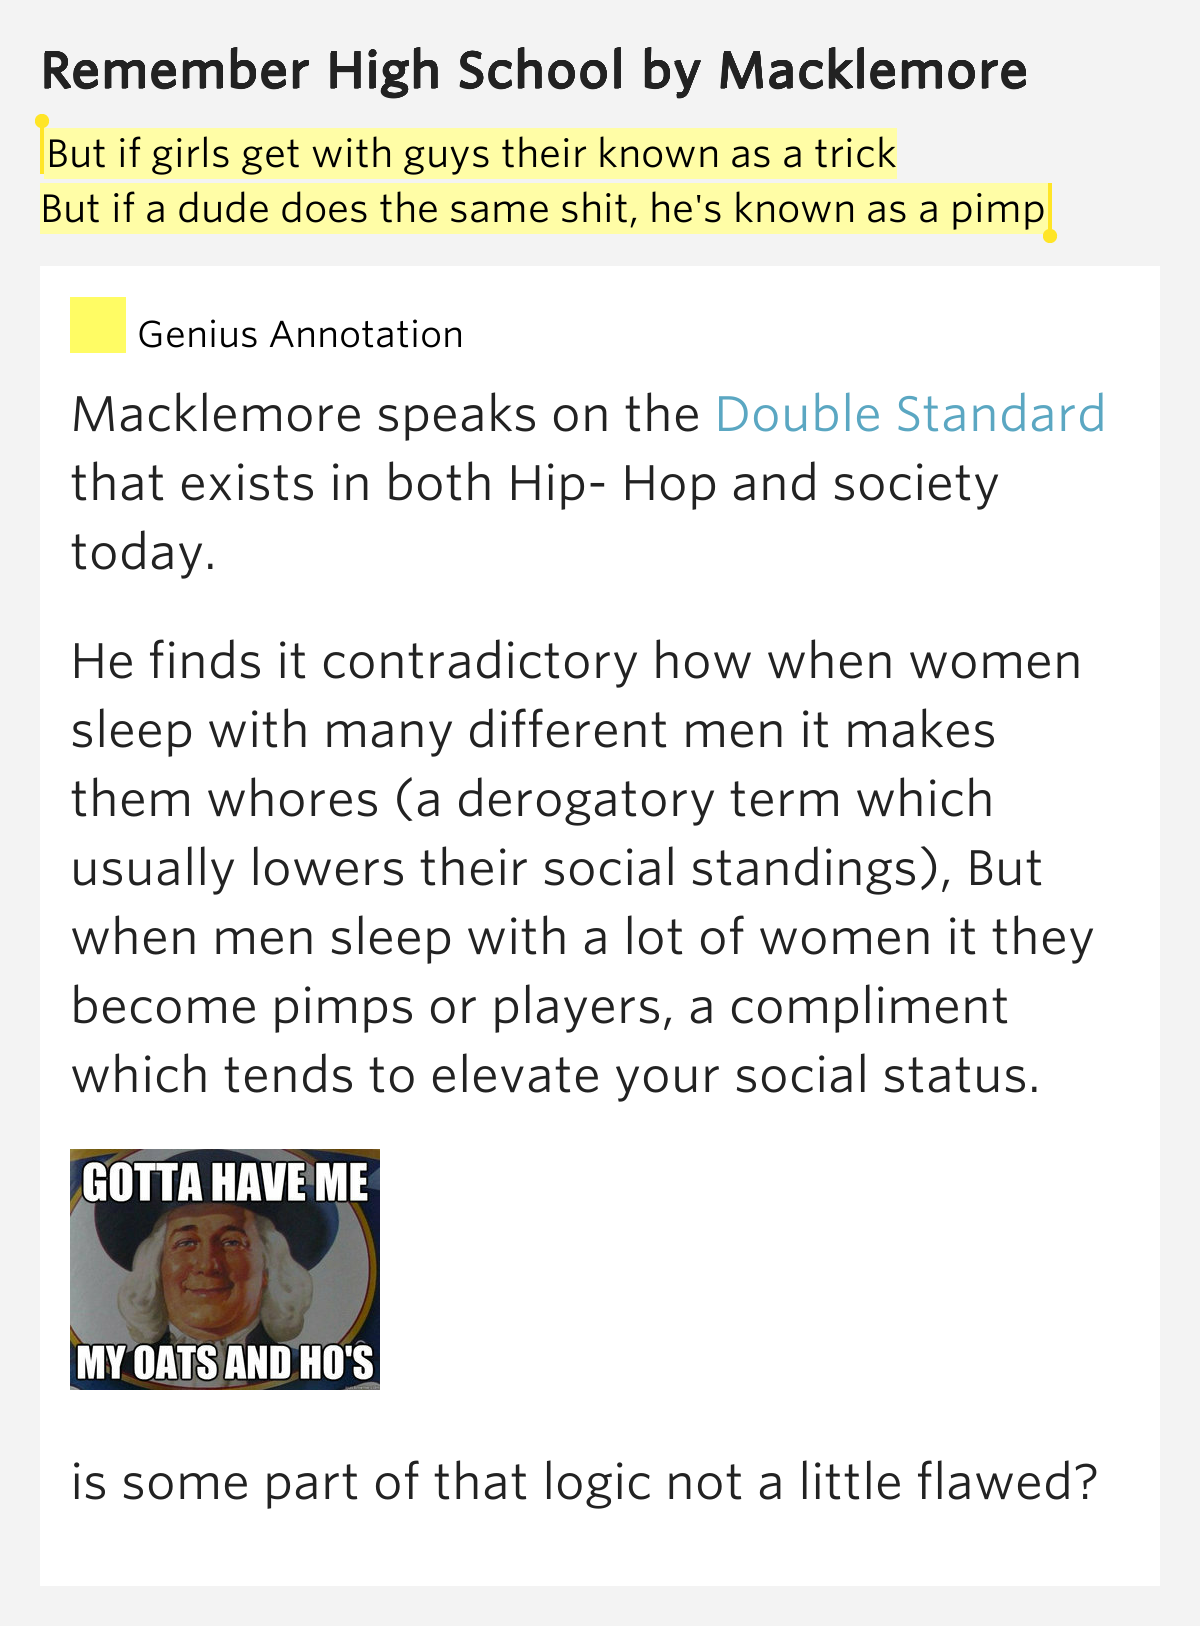 Hip hop lyrics are derogatory toward woman